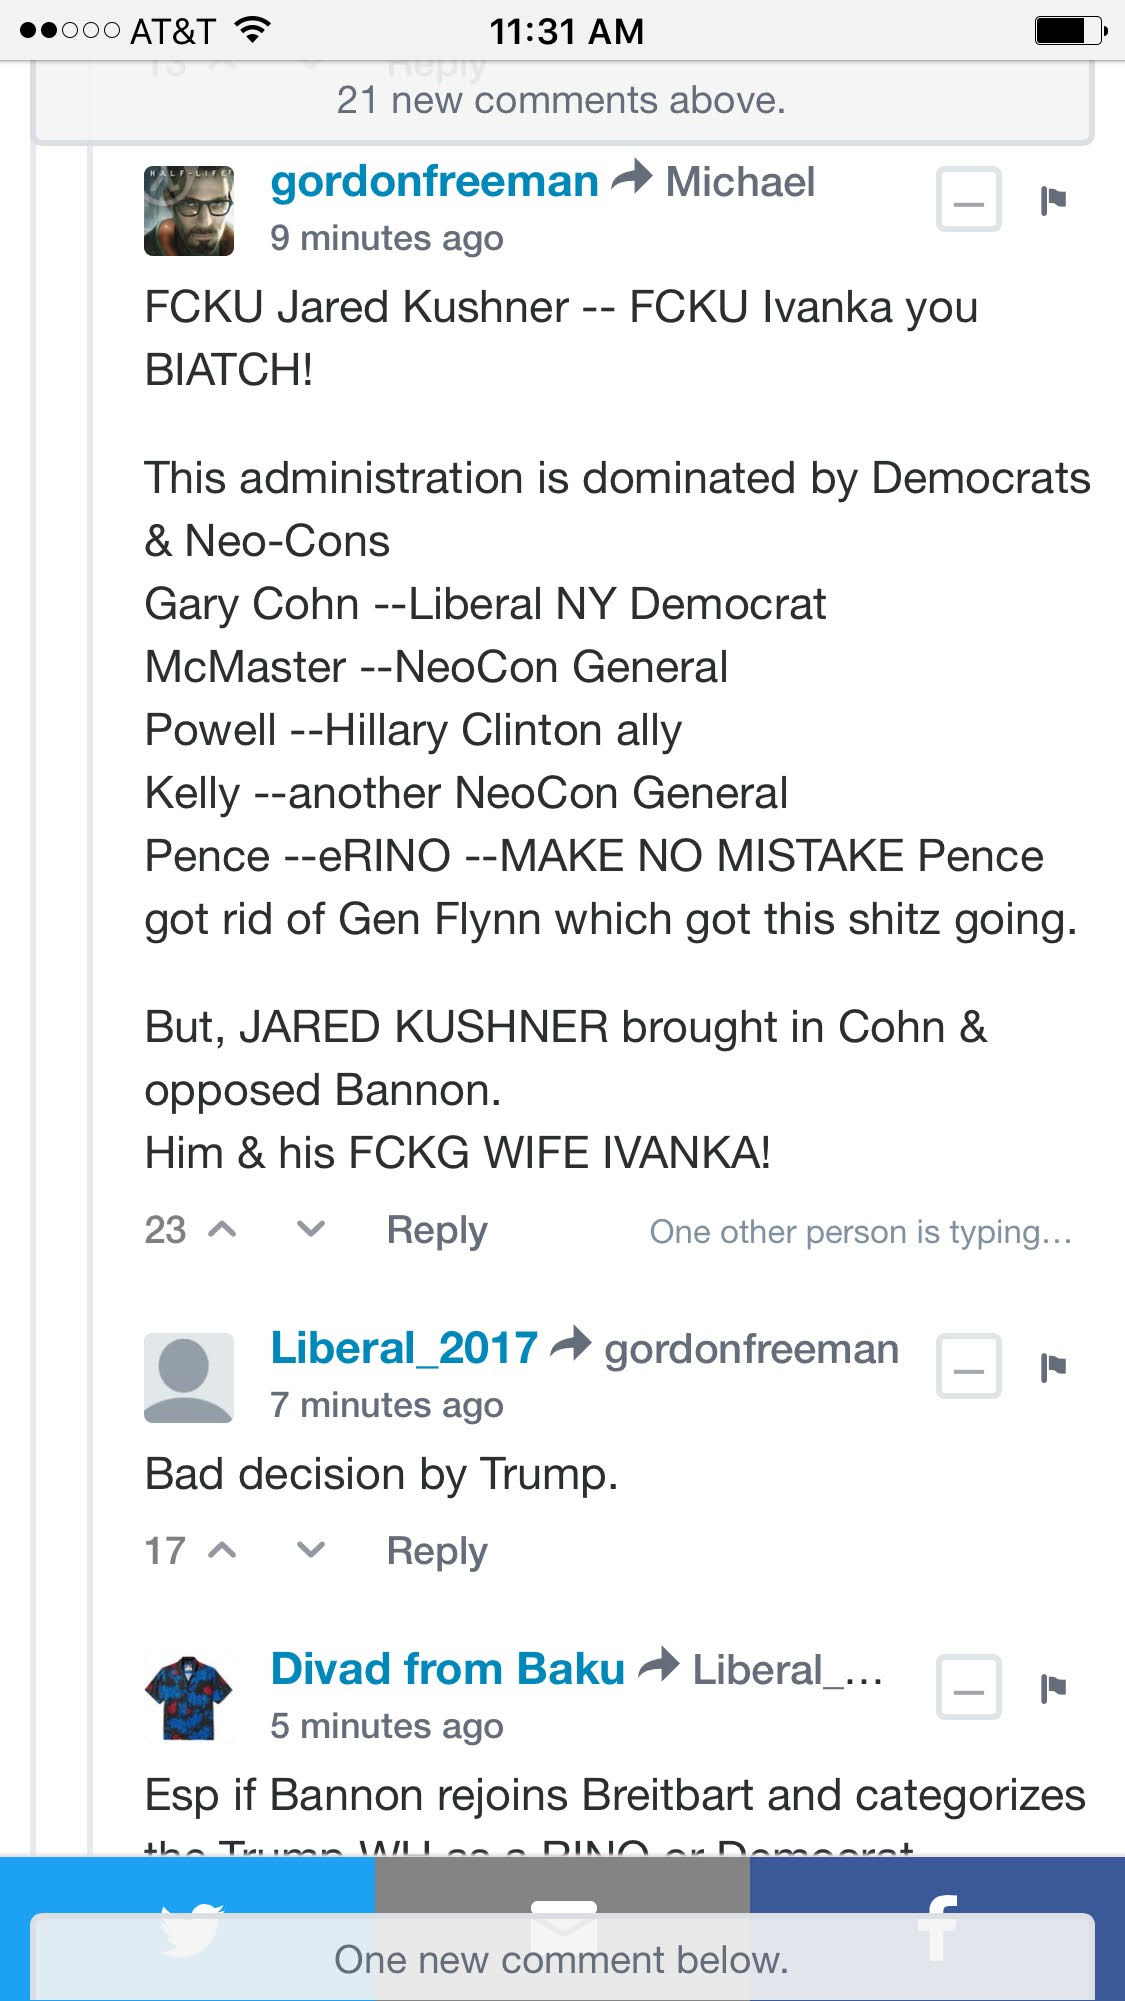 Breitbart comments 3